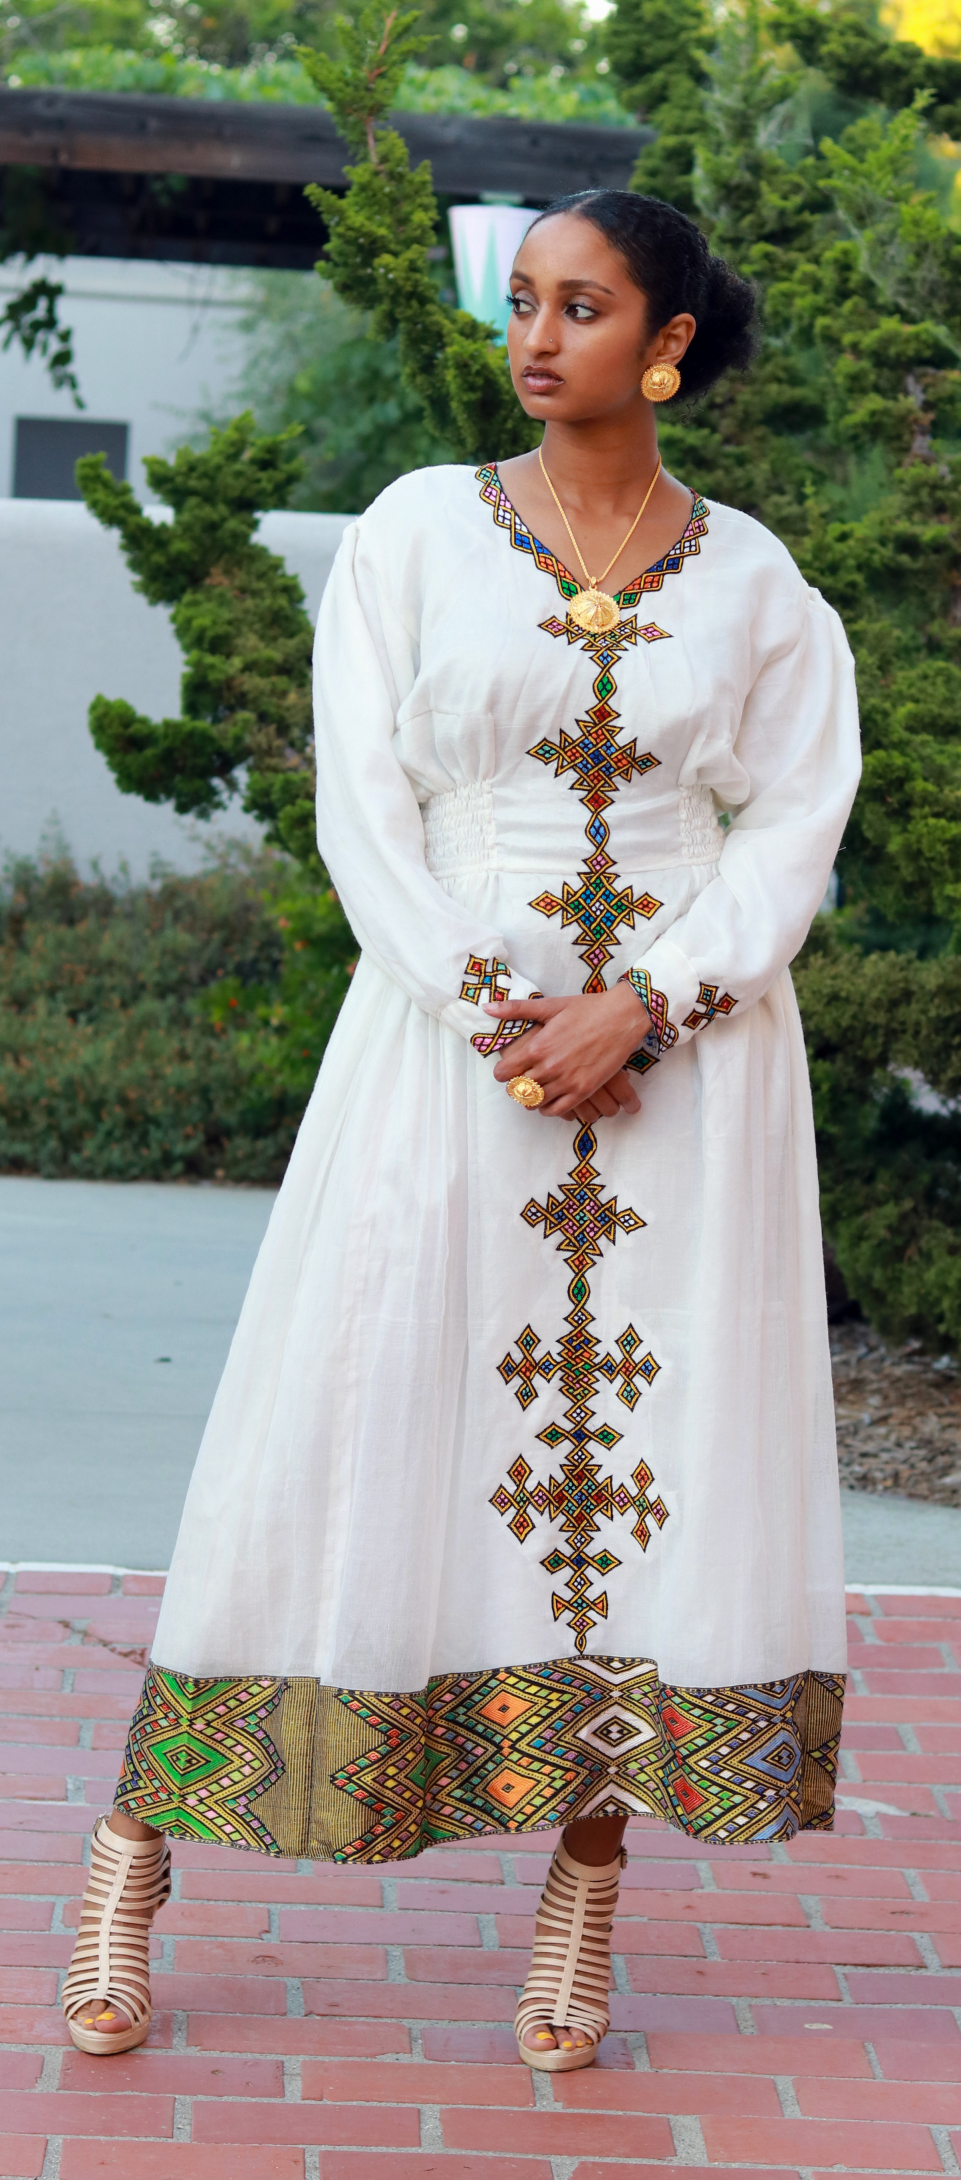 Pin By Beilul On Habesha Dress In 2019 Ethiopian Dress Ethiopian